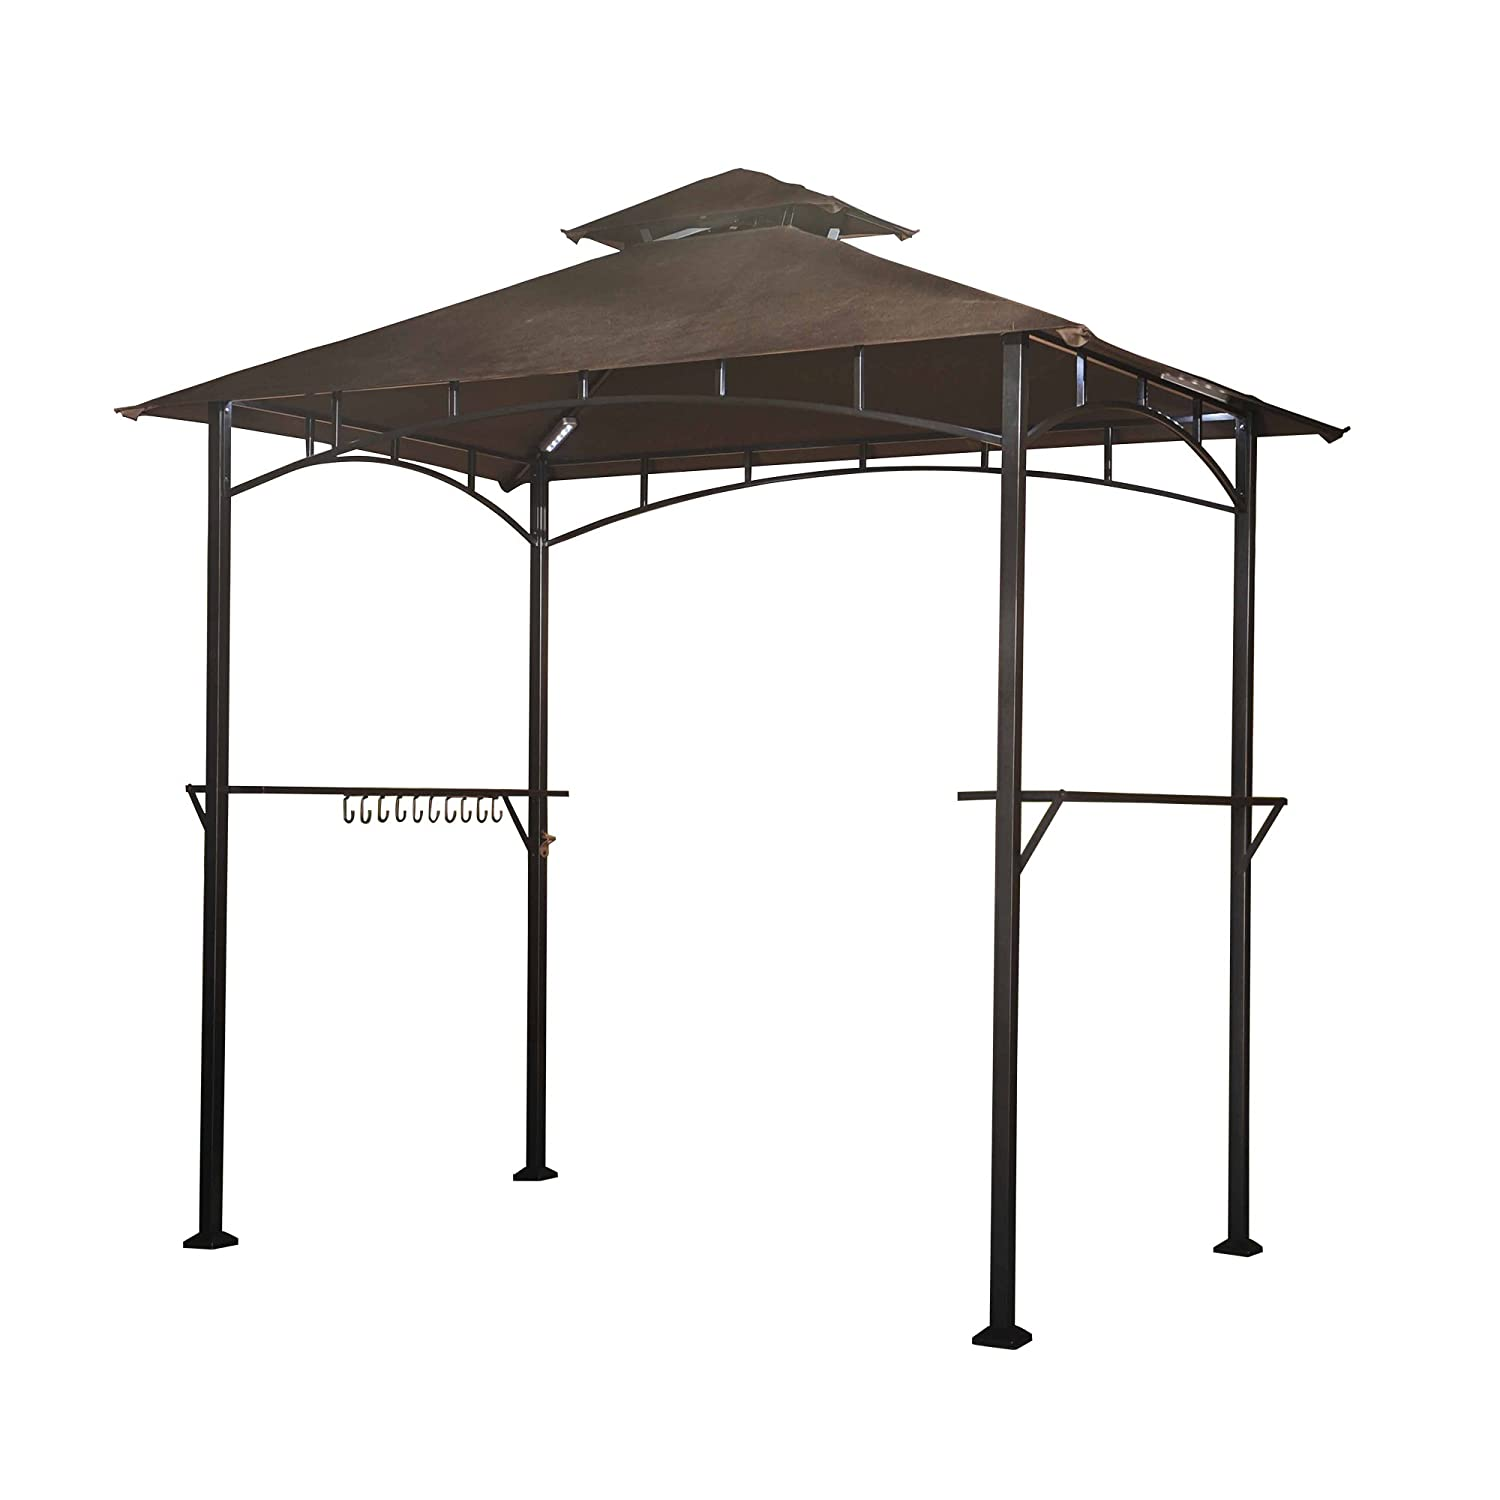 sunjoy L-GG001PST-F 8' X 5' Soft Top Brown Double Tiered Canopy Grill on